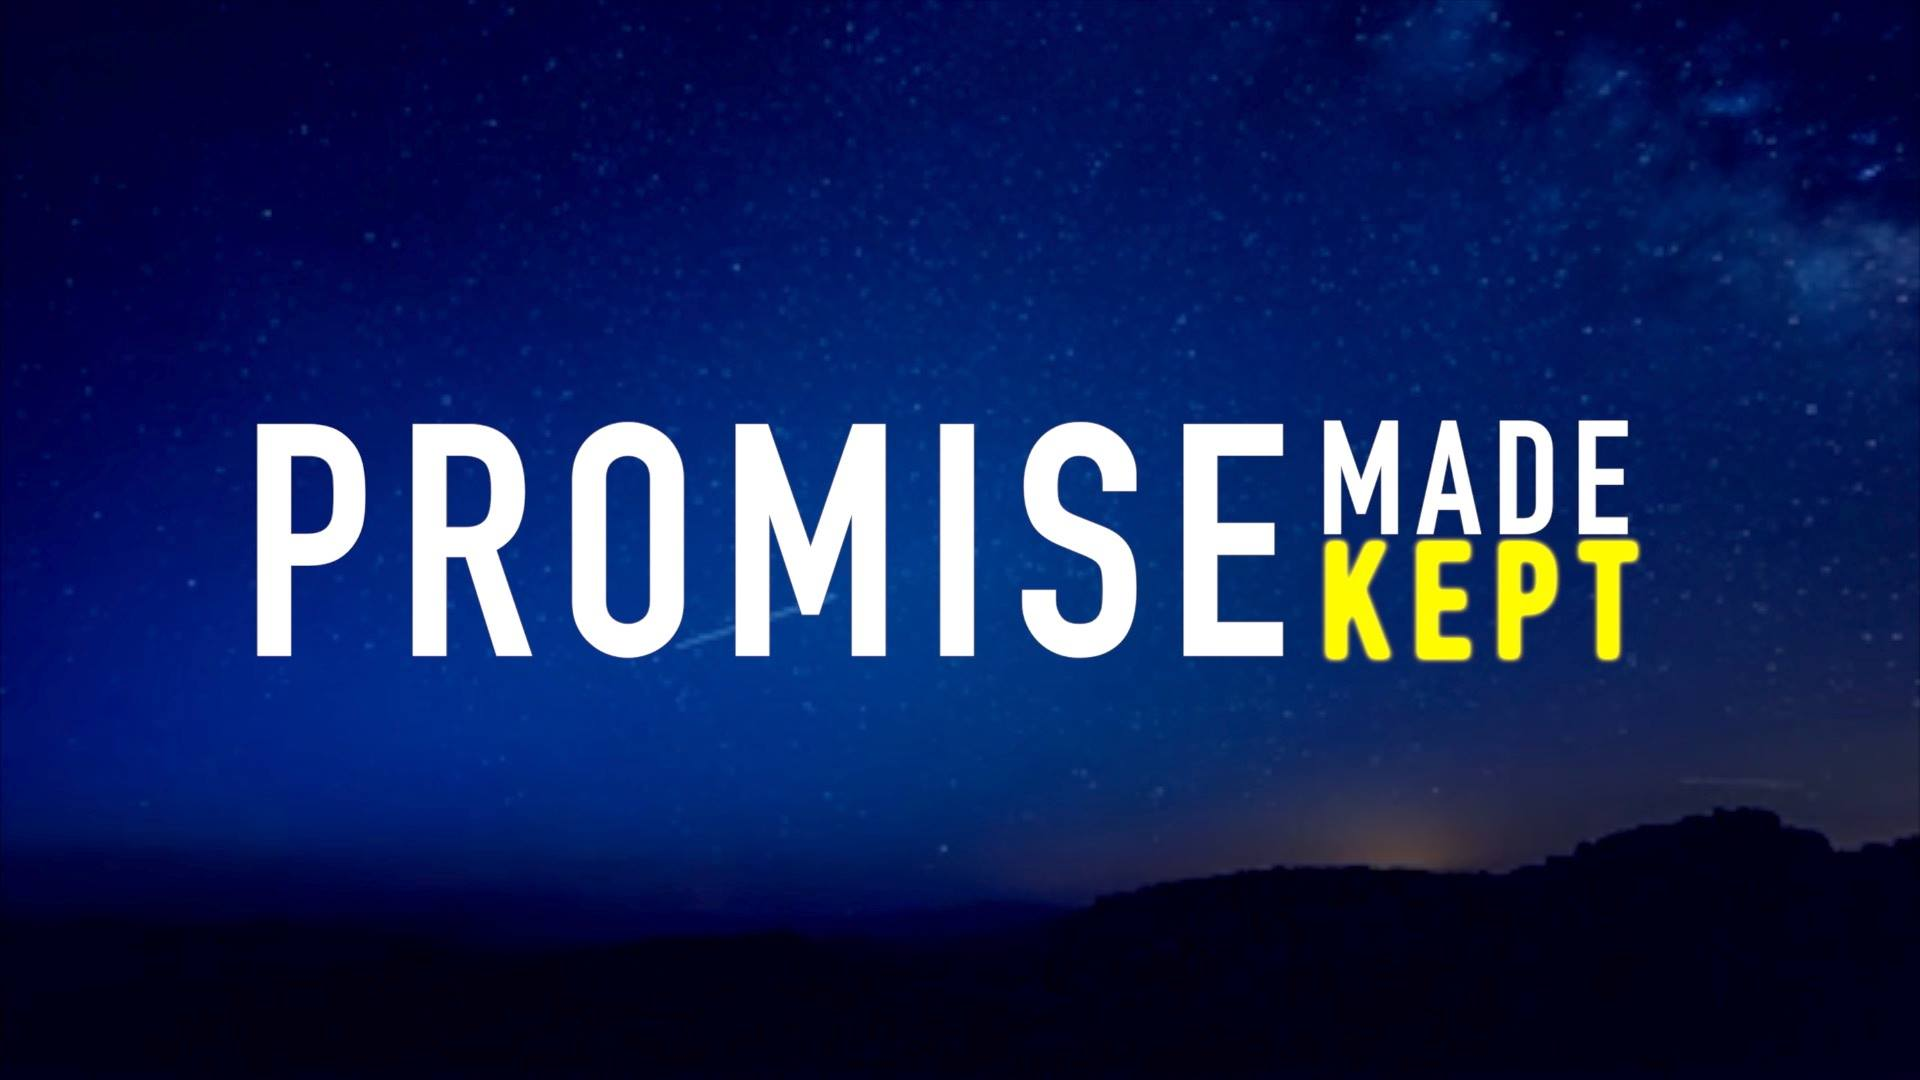 Promise Made-Kept - A series study through the book of Genesis. Click HERE to watch the messages from this series!